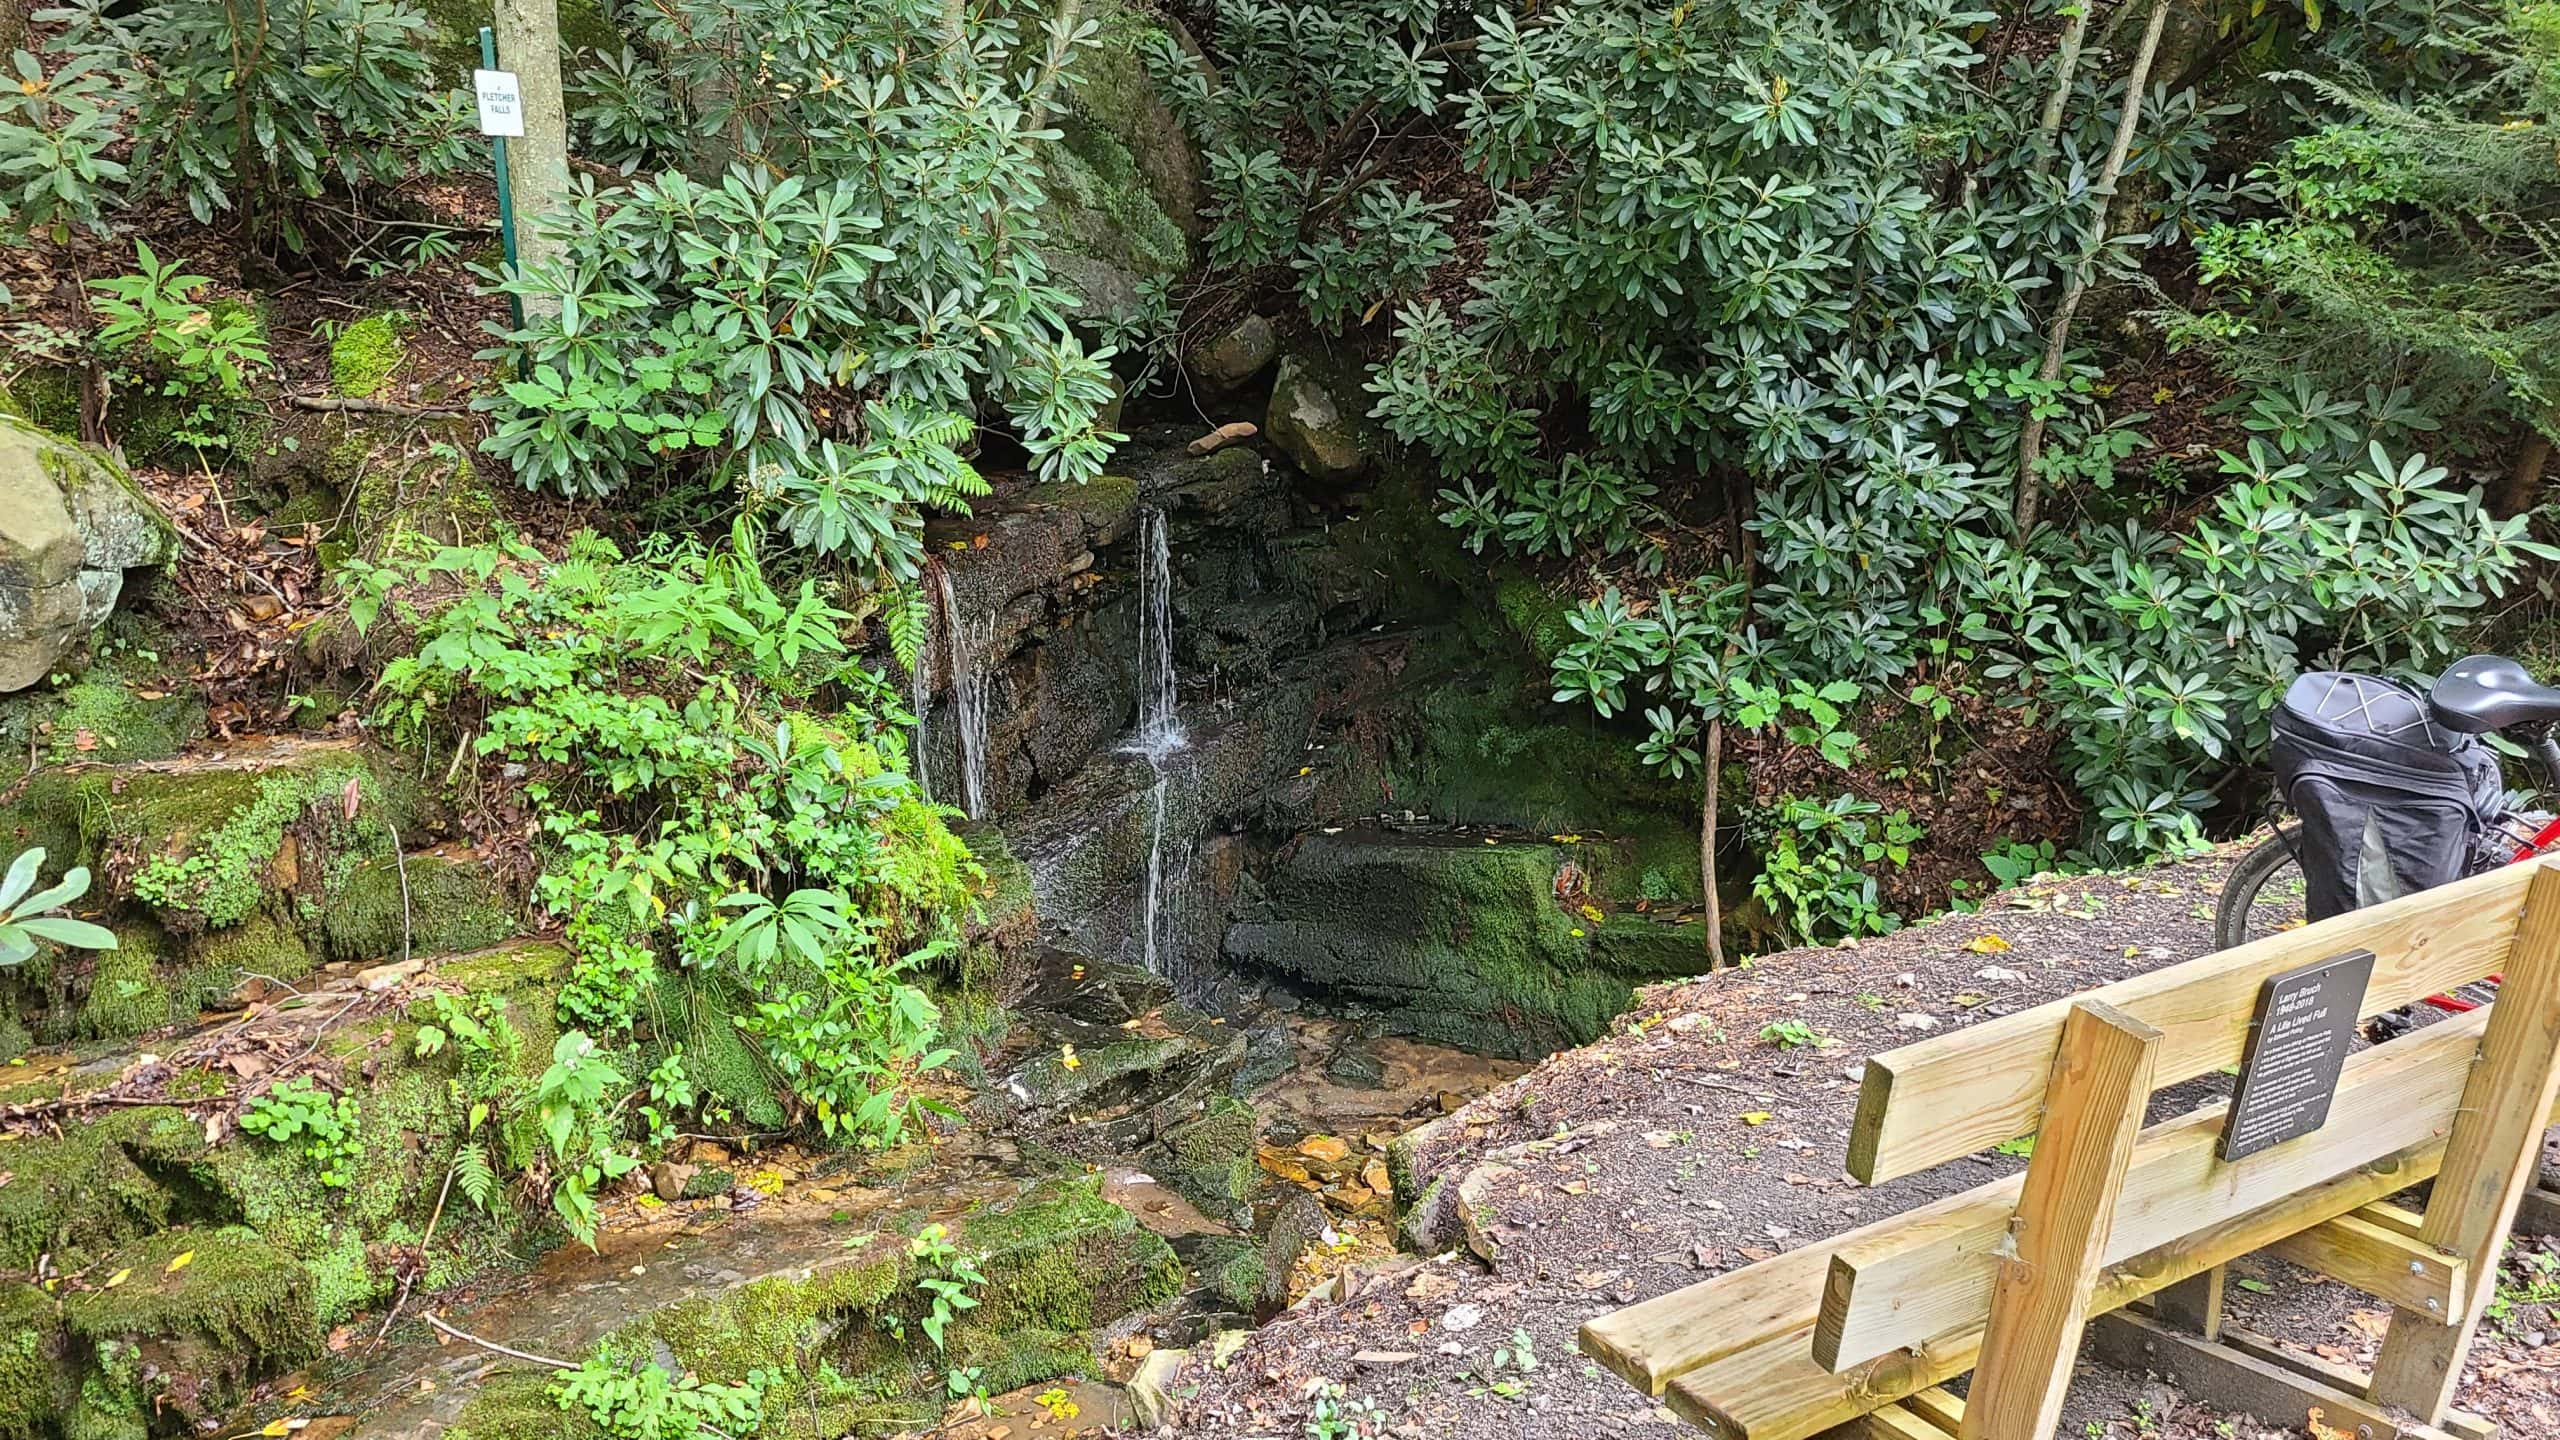 A small series of waterfalls is surrounded by lush vegetation and forest. A bench with an illegible sign provides a place to rest. A bike is visible.